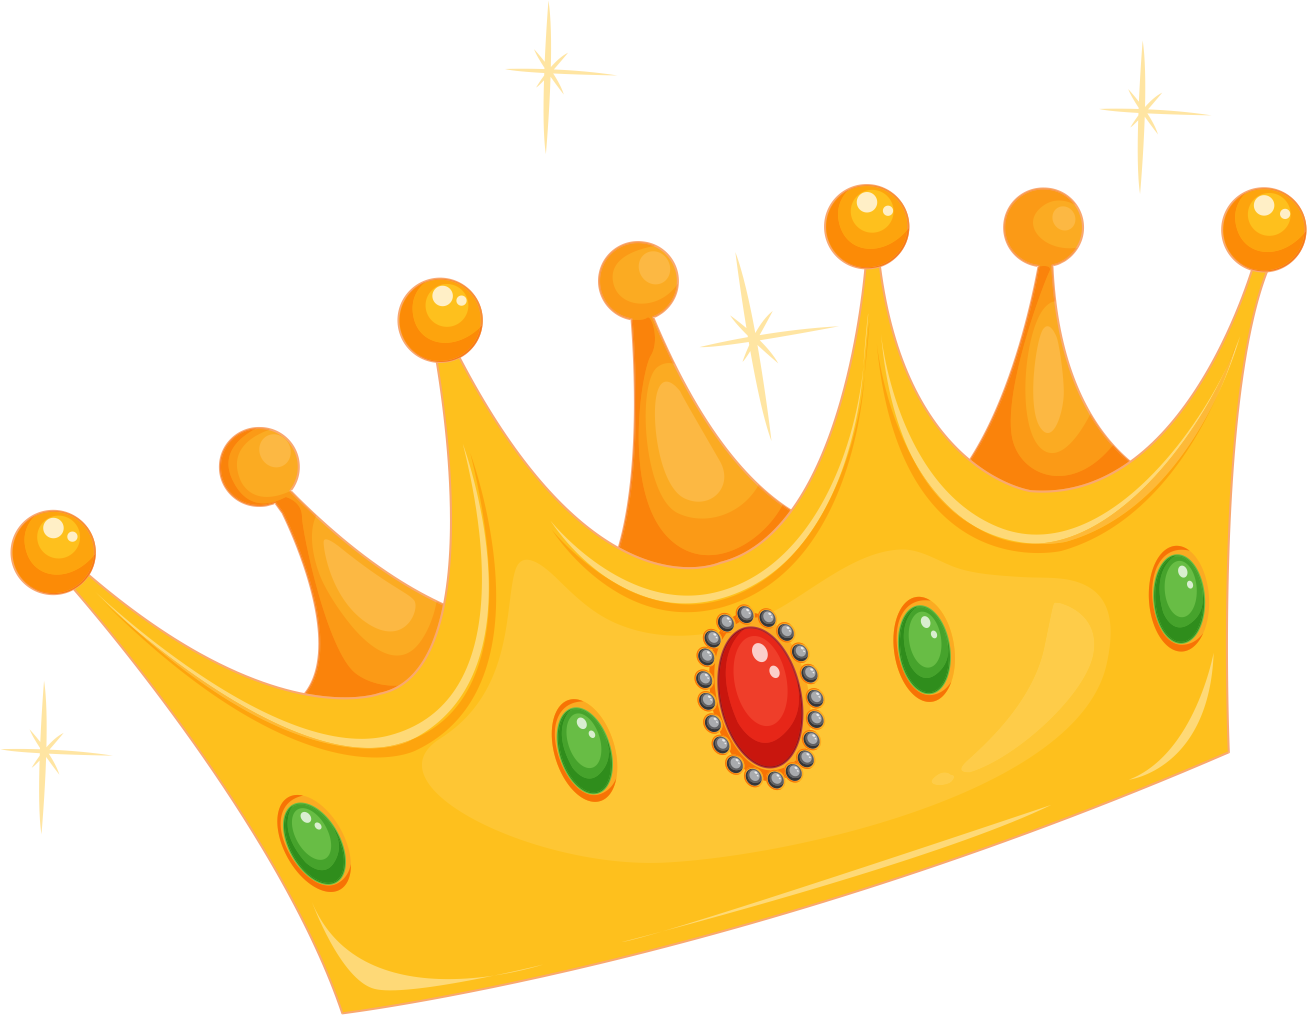 Burger king crown clipart jpg Crown of Queen Elizabeth The Queen Mother Cartoon Clip art ... jpg